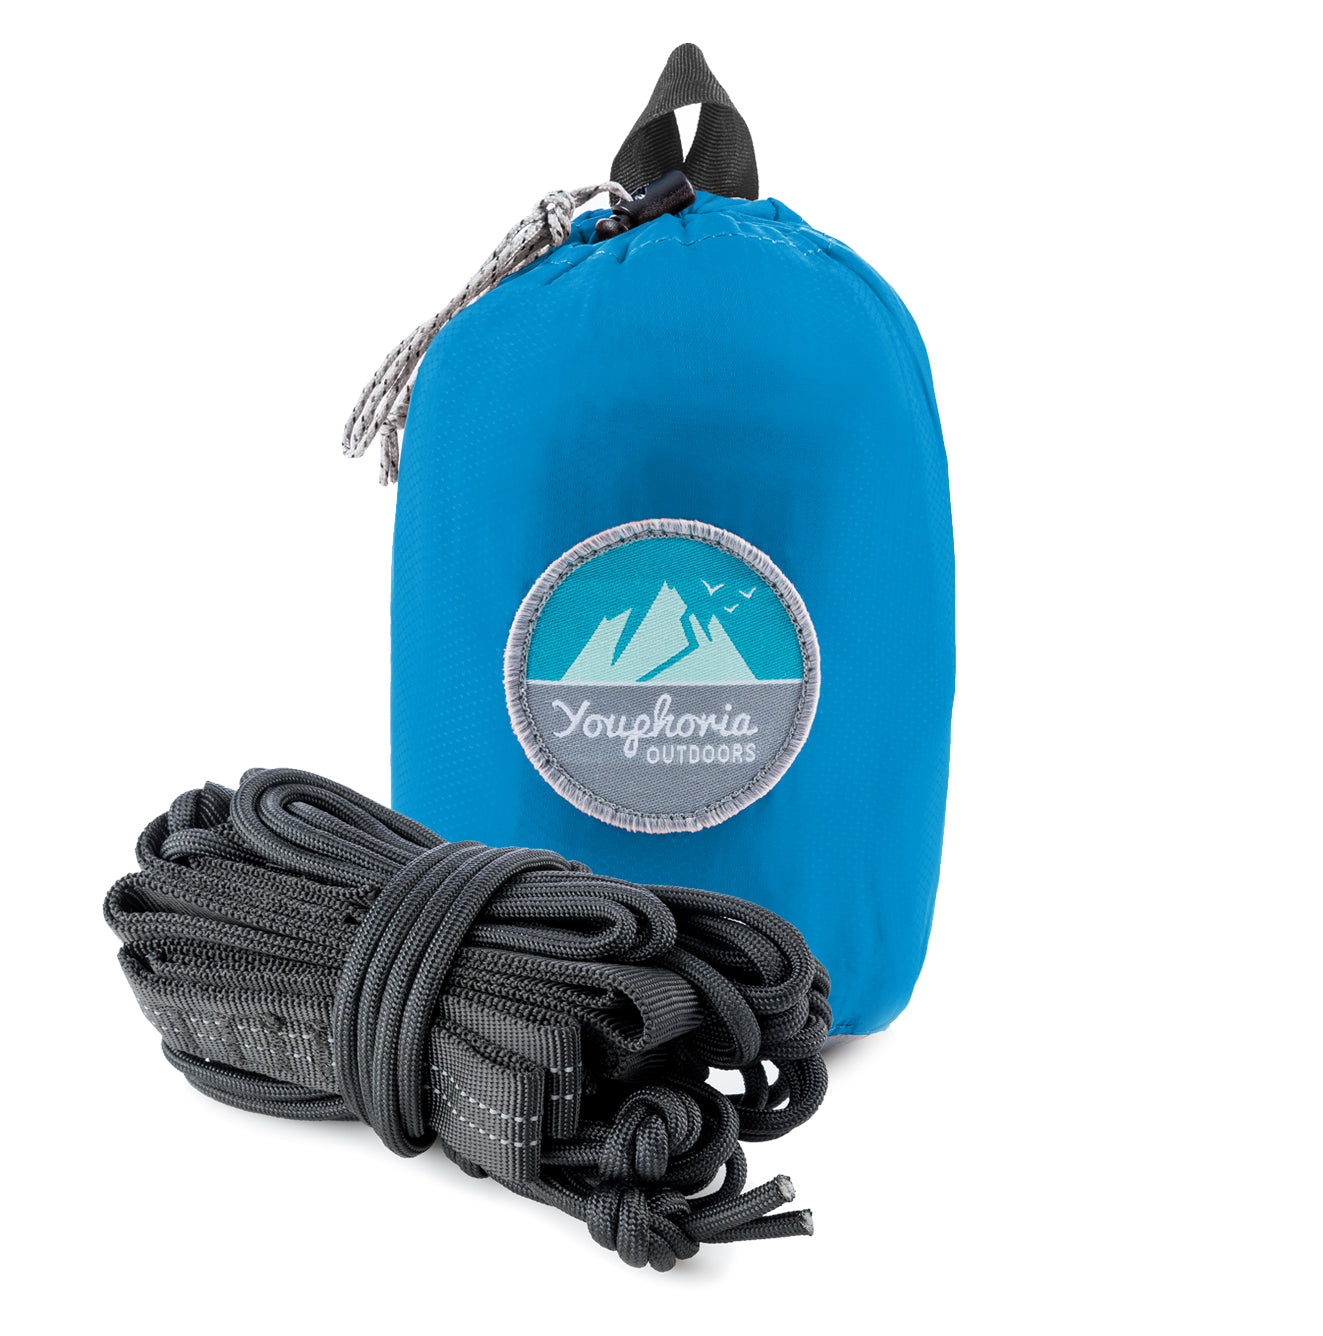 Youphoria Outdoors Portable Camping Ultralight Hammock packed in bag.